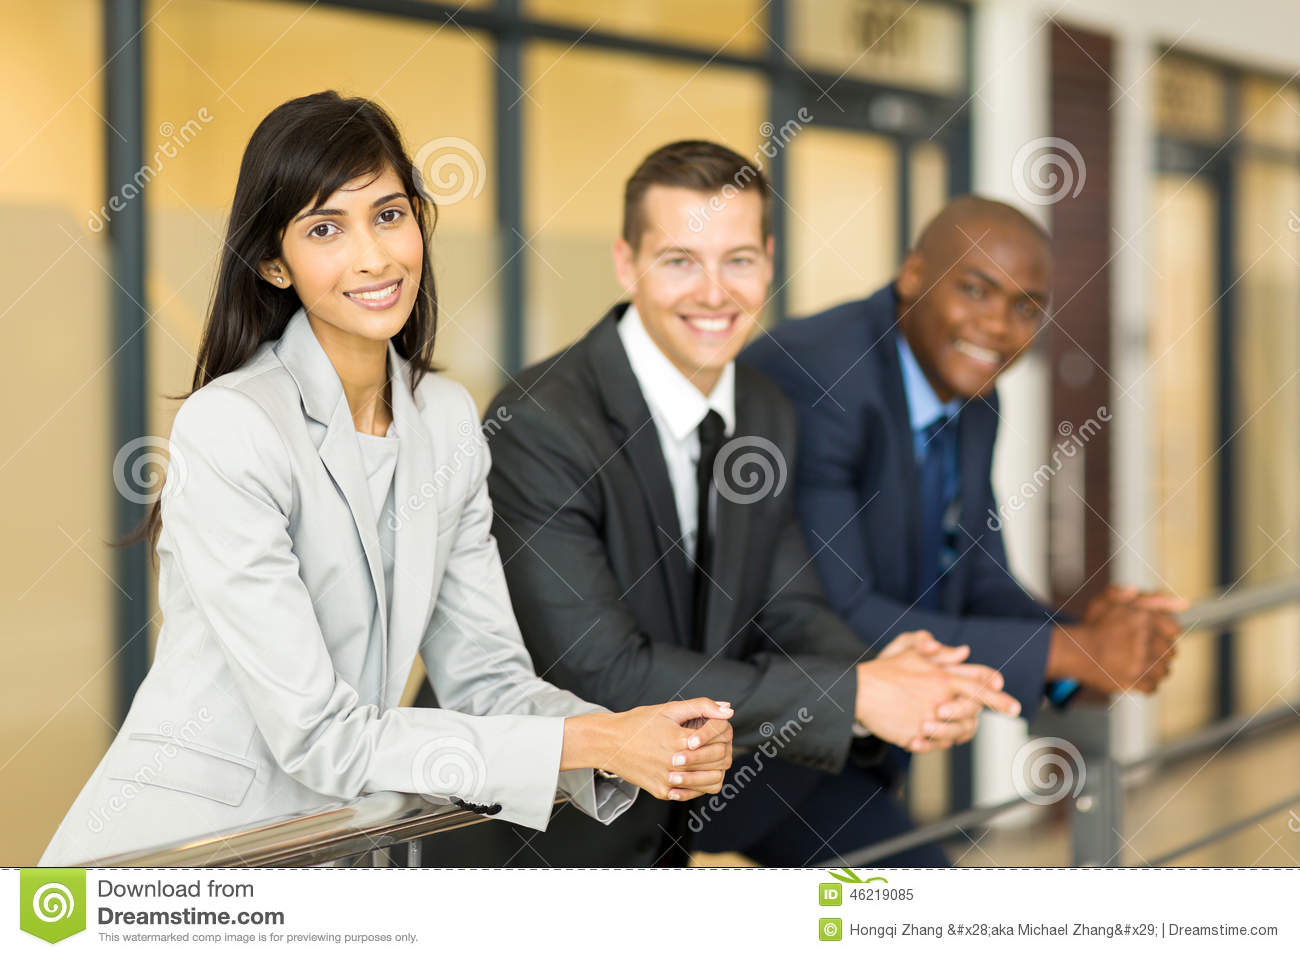 Woman with co-workers